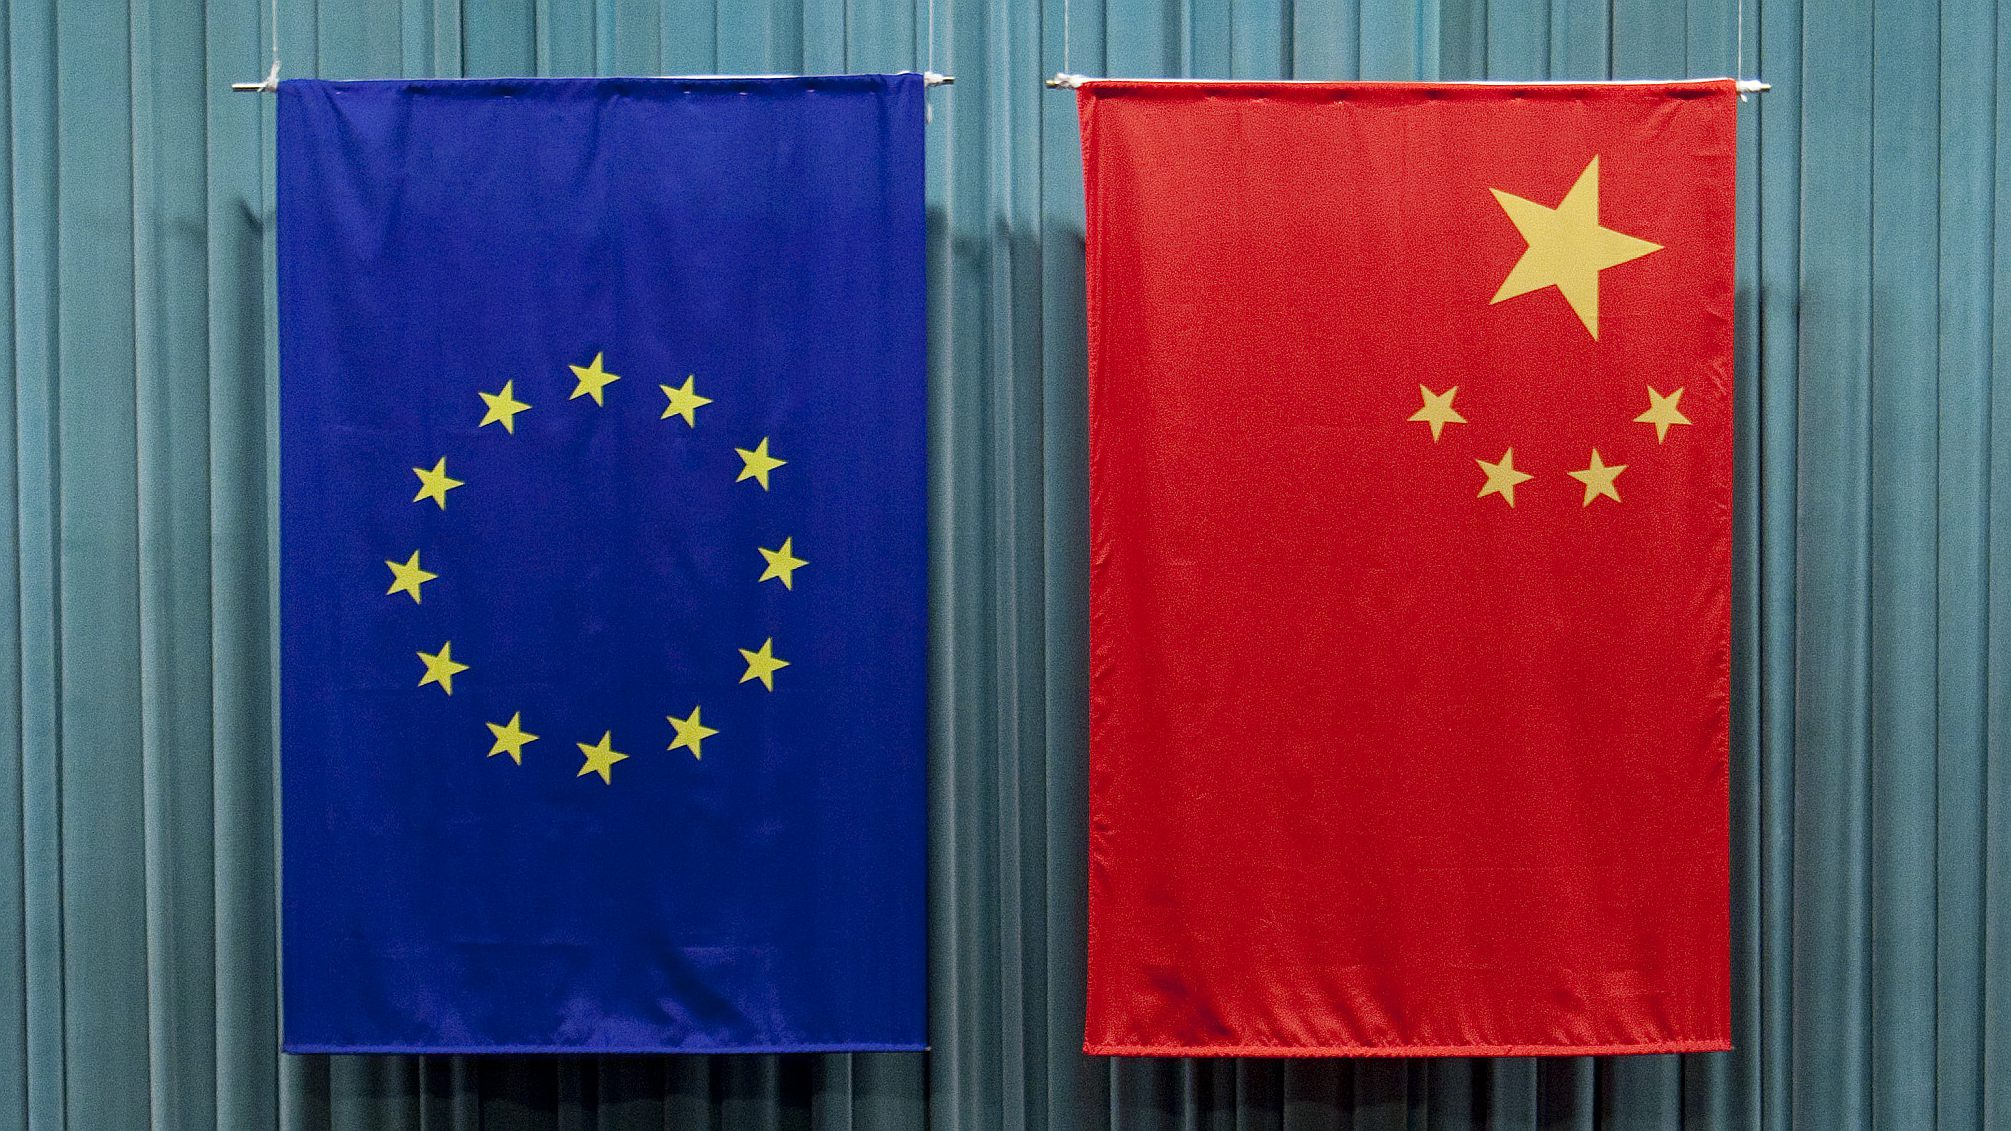 A brilliant move in China's diplomacy: Li's visit to Brussels